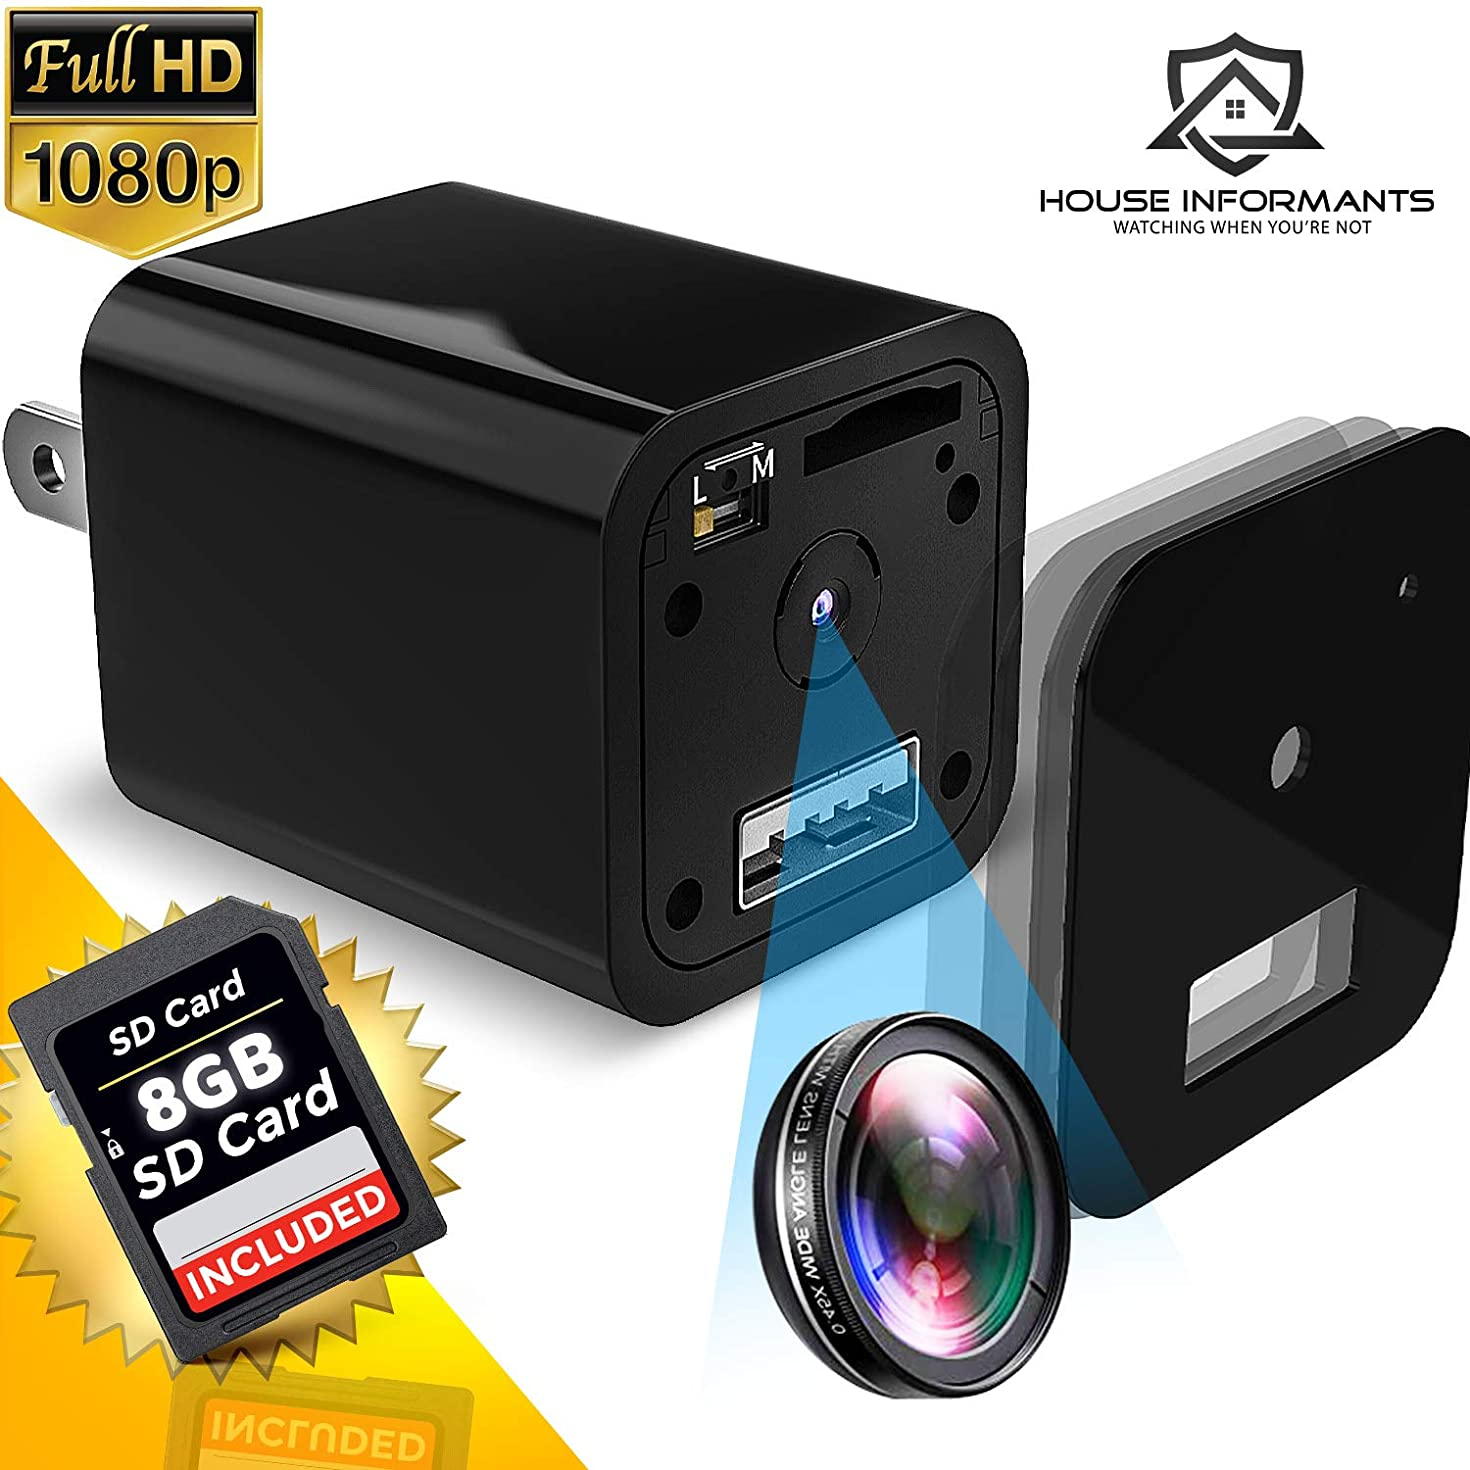 Hidden Spy Camera with 8 GB Micro SD Card | 1080P Full HD | Charger | Has Motion Detection | Loop Recording | Flash Transfer Stick | for Protection and Surveillance of Your Home and Offic